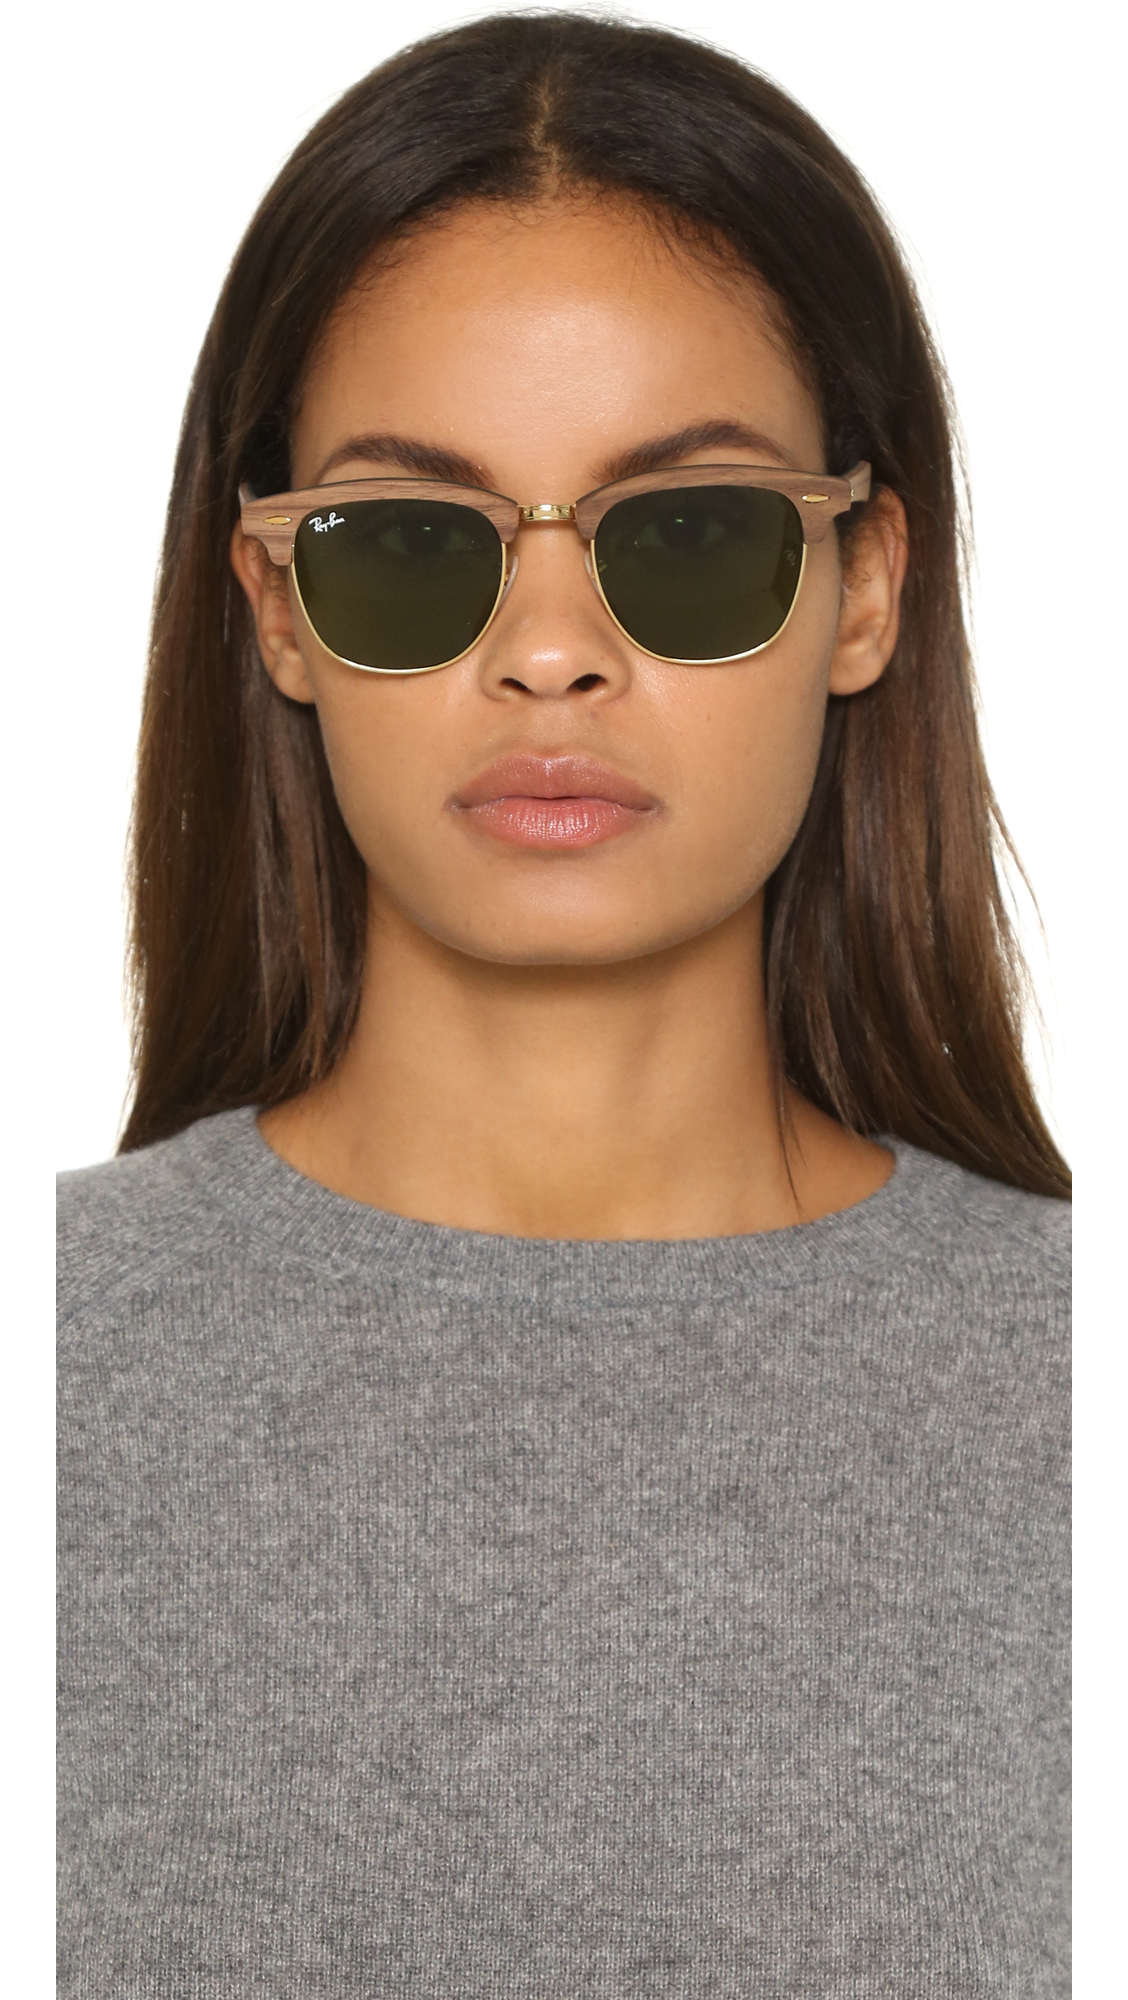 013583750979 Lyst - Ray-Ban Clubmaster Wood Sunglasses in Brown